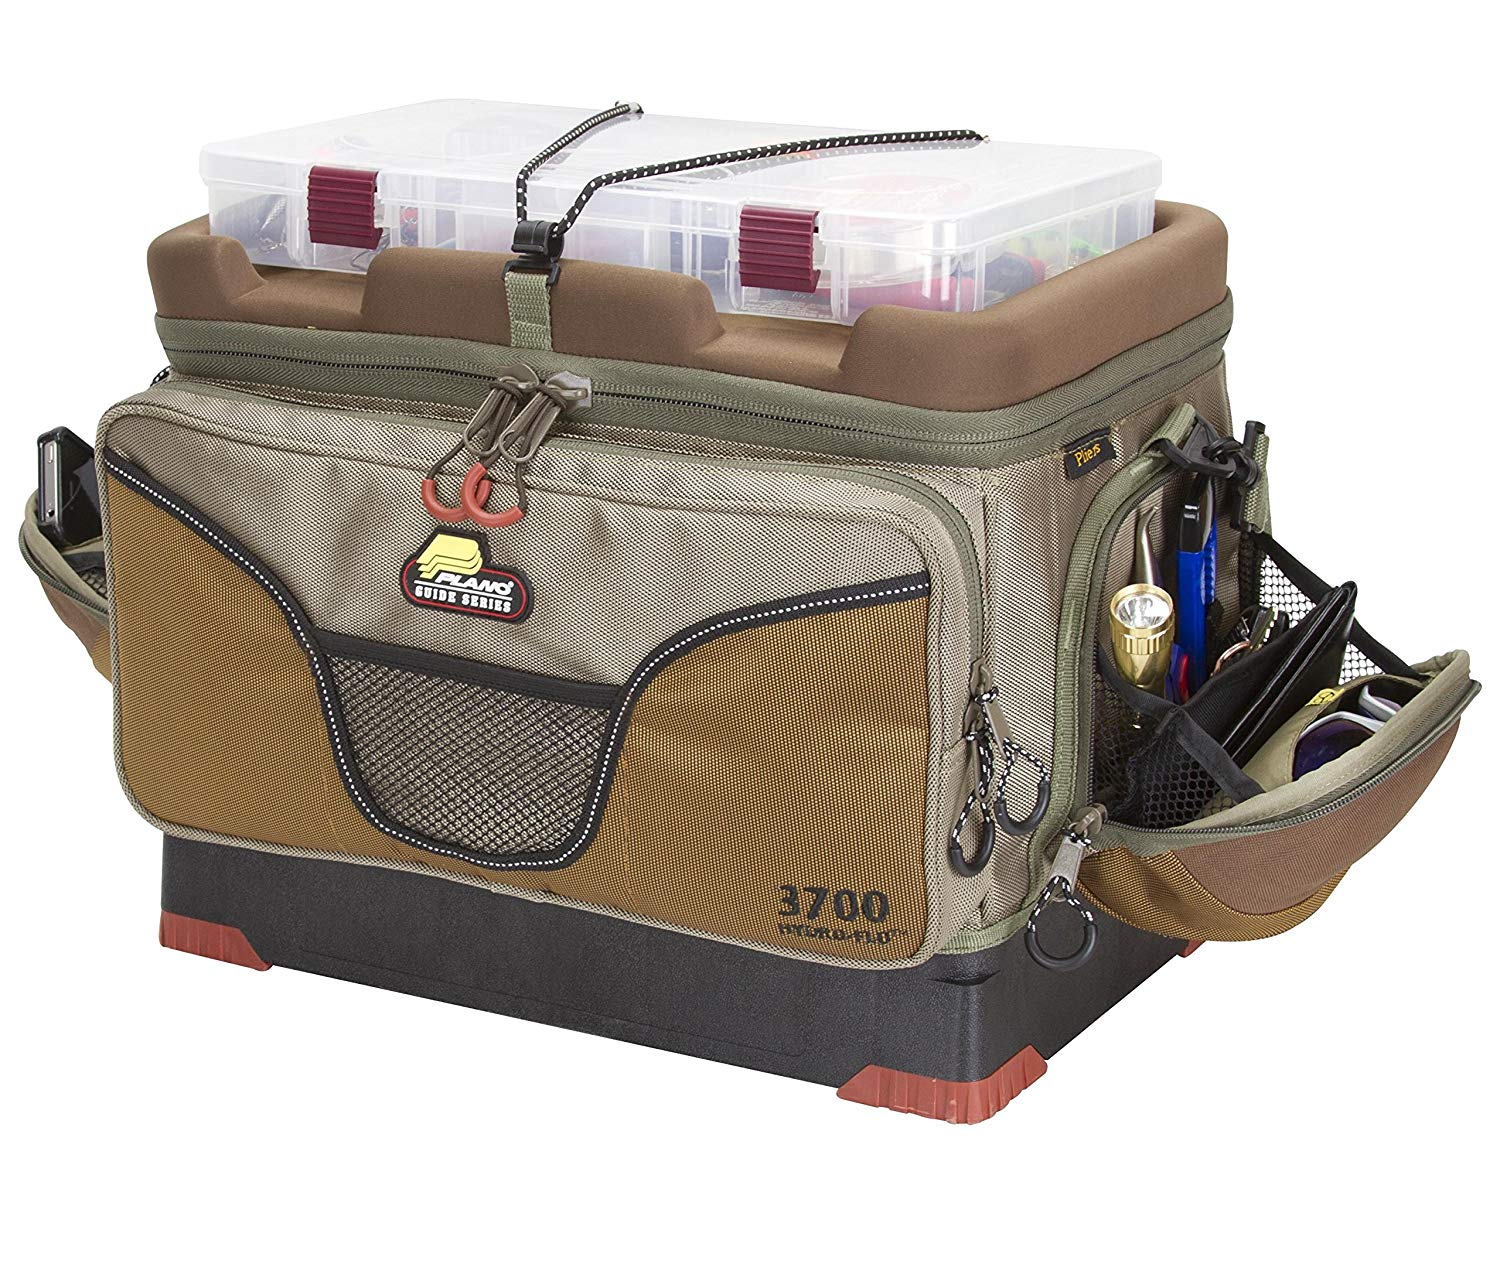 Plano 467410 Hydro-Flo Guide 3700 Series Tackle Bag